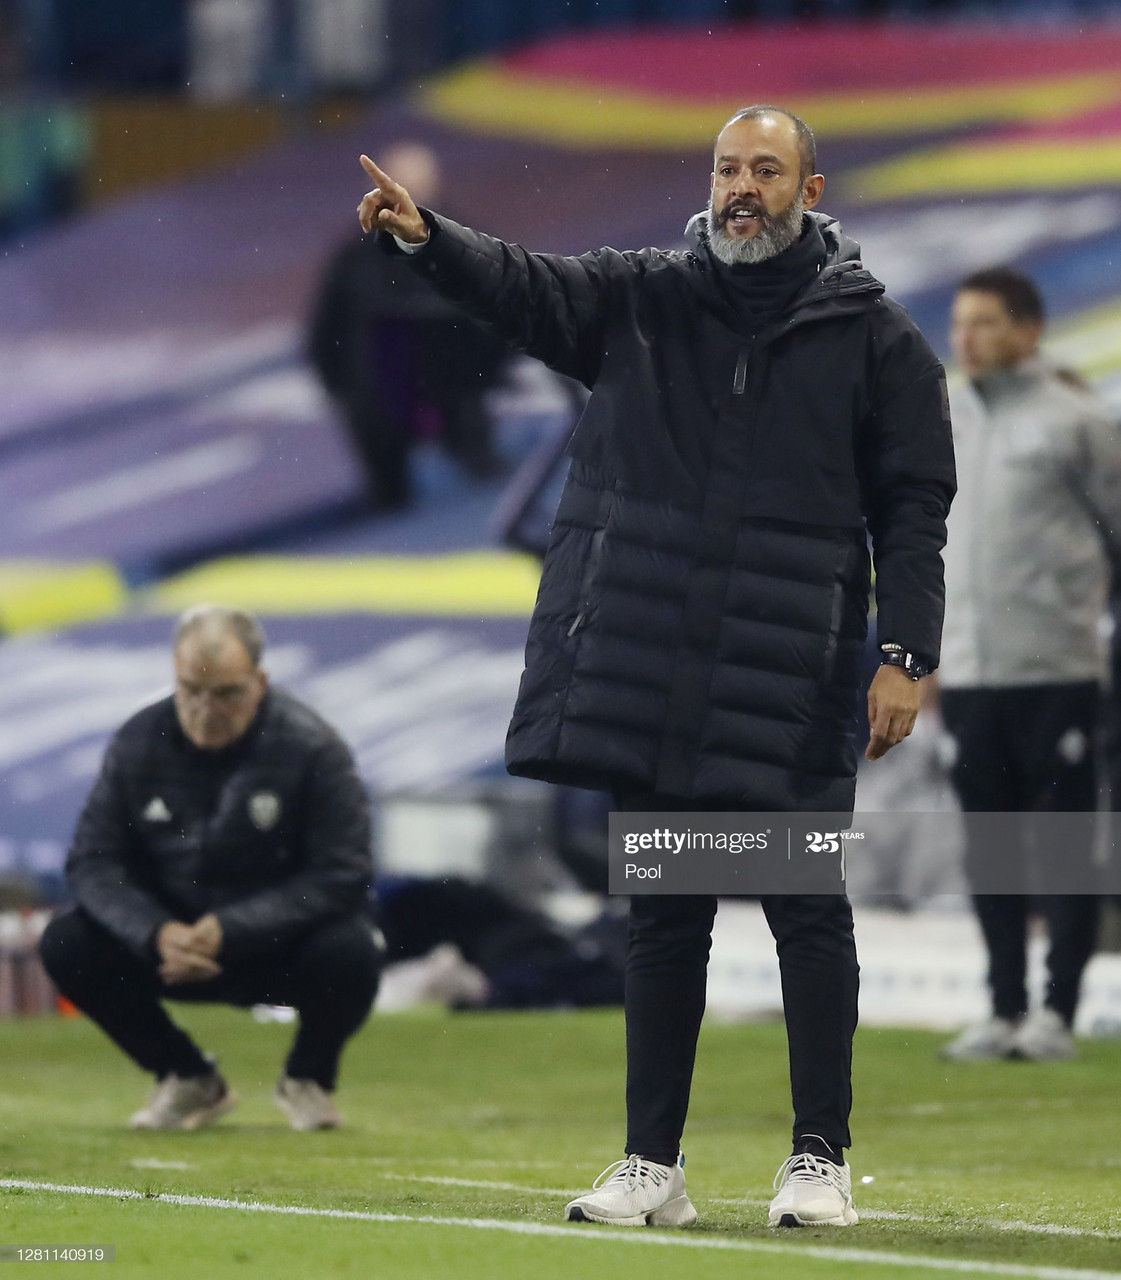 Nuno's men stood firm against Bielsa's attacking machine and scrapped their way to a deserved but hard-fought three points | Photo by Martin Rickett - Pool/Getty Images